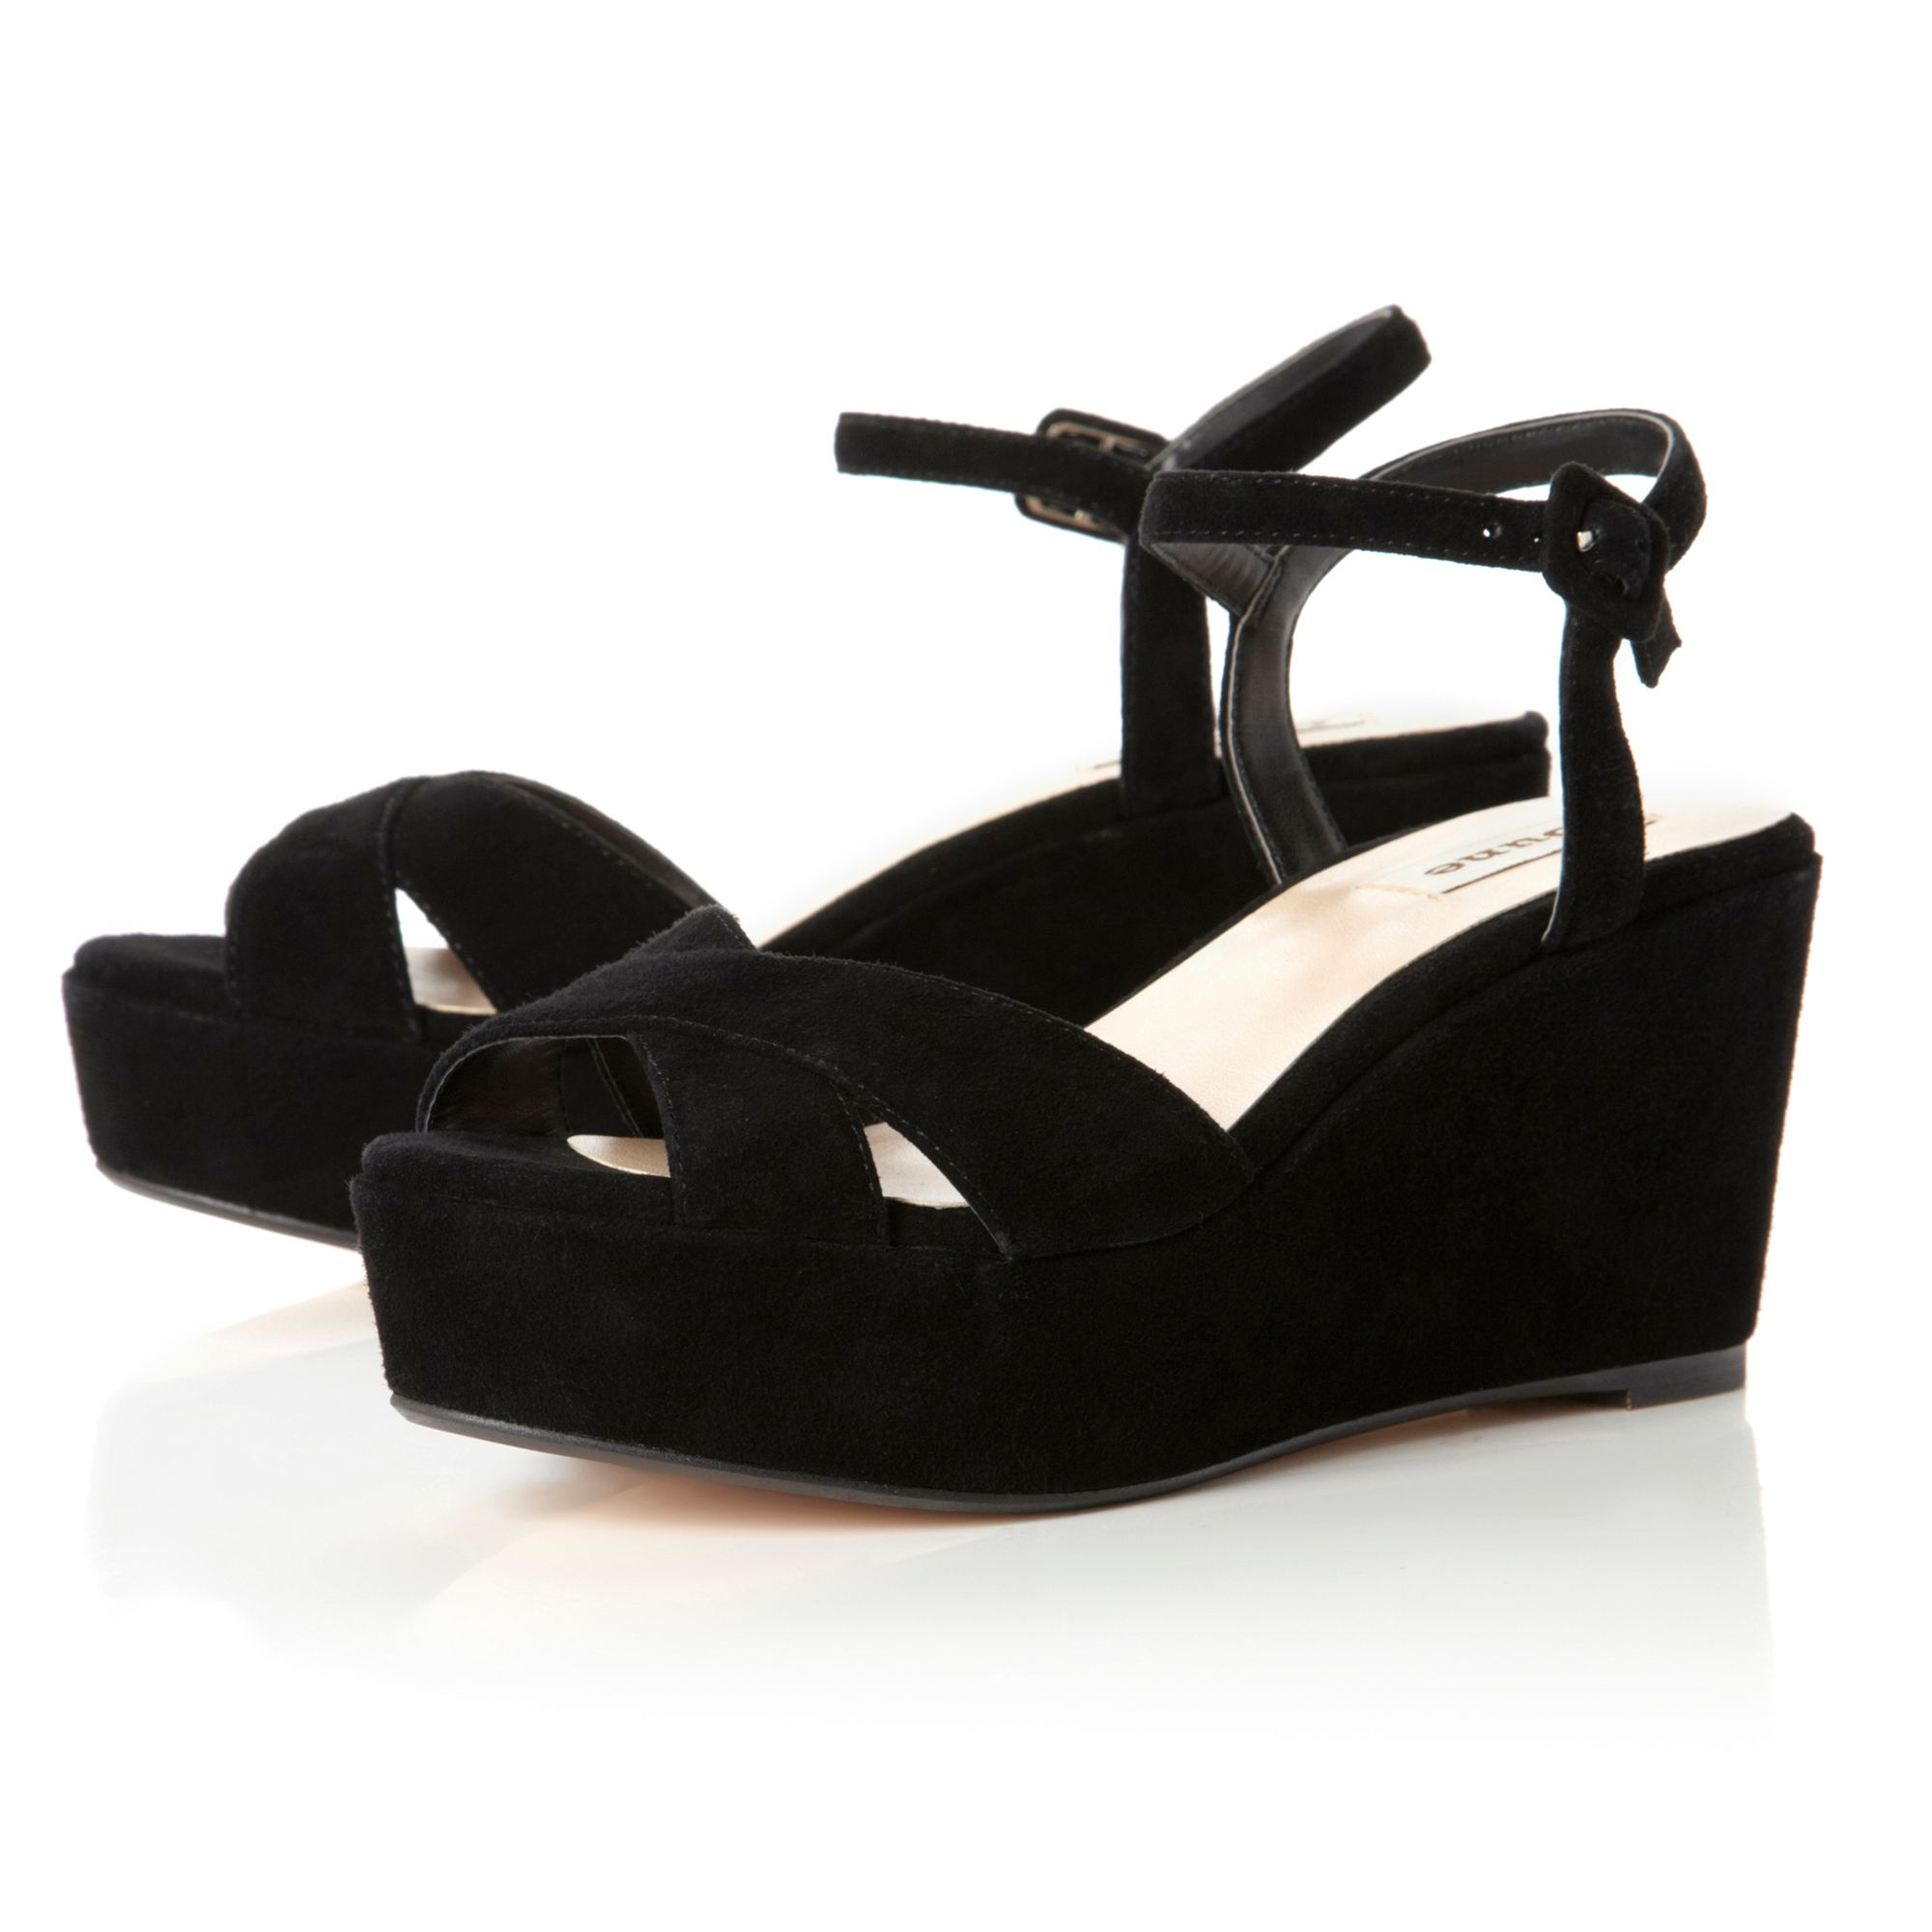 Granted Flatform Strap Cross Wedge Sandals